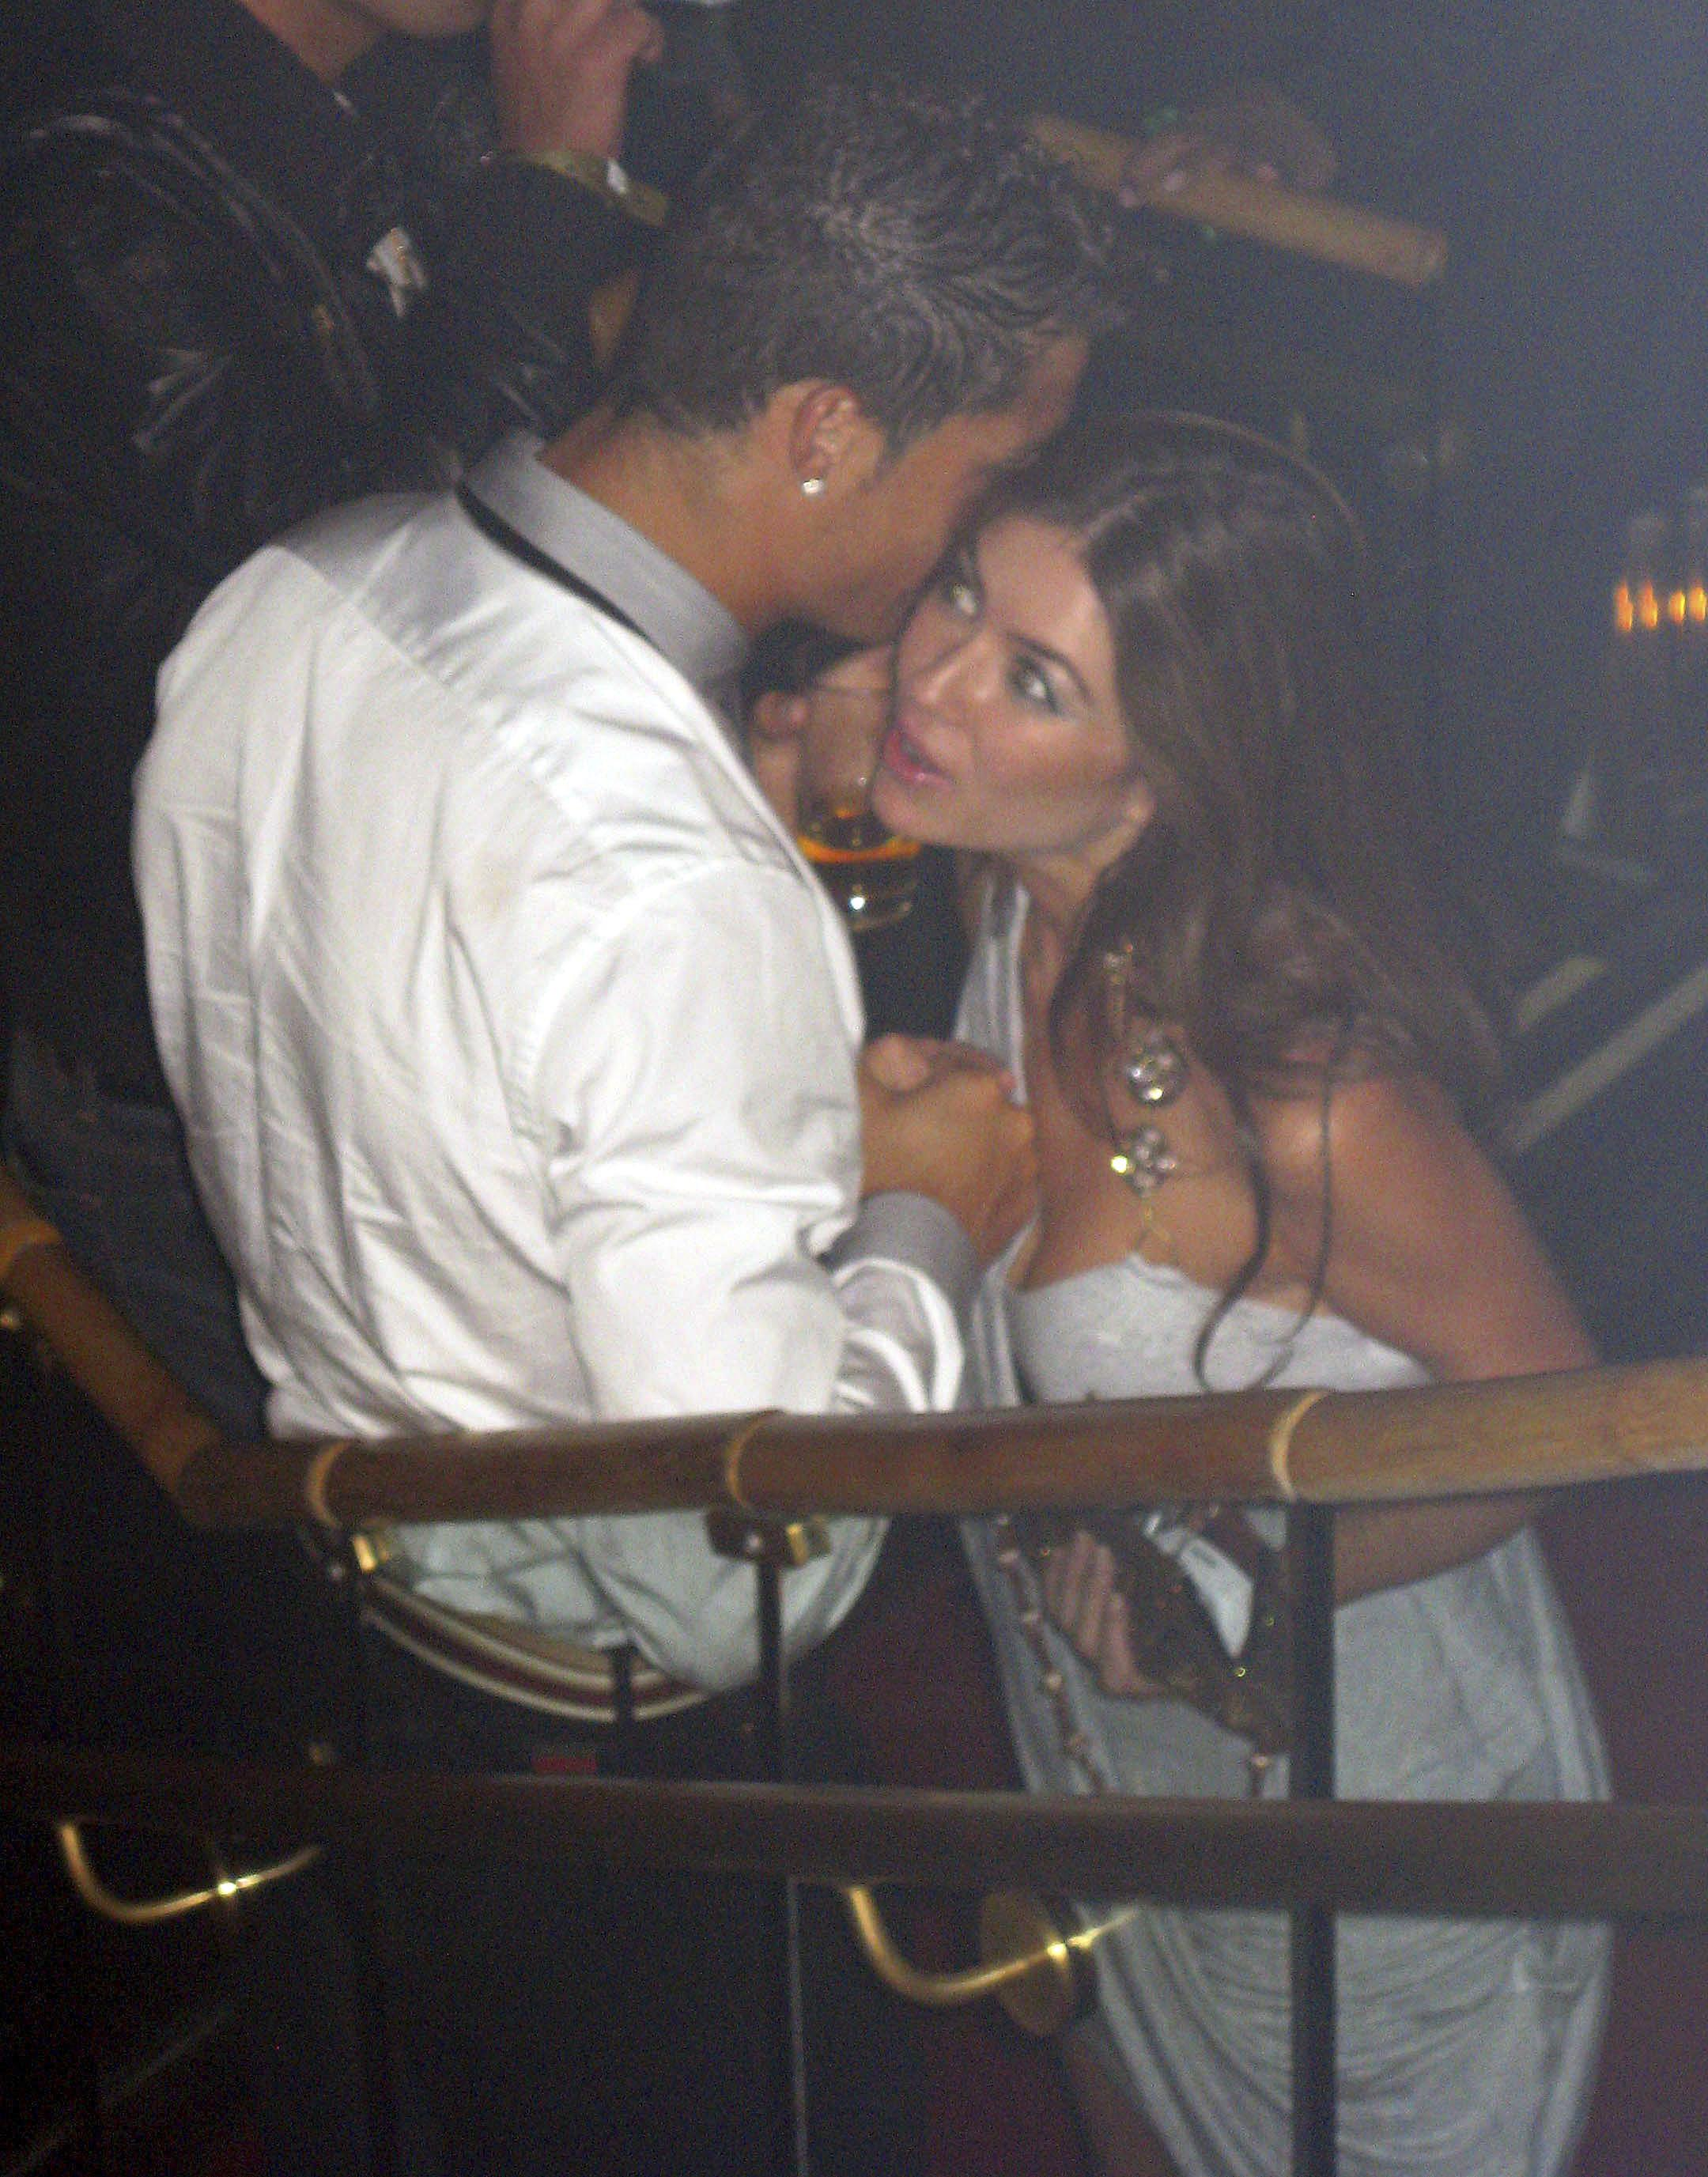 Ronaldo was snapped with rape accuser Kathryn Mayorga in the Rain nightclub Las Vegas in June 2009